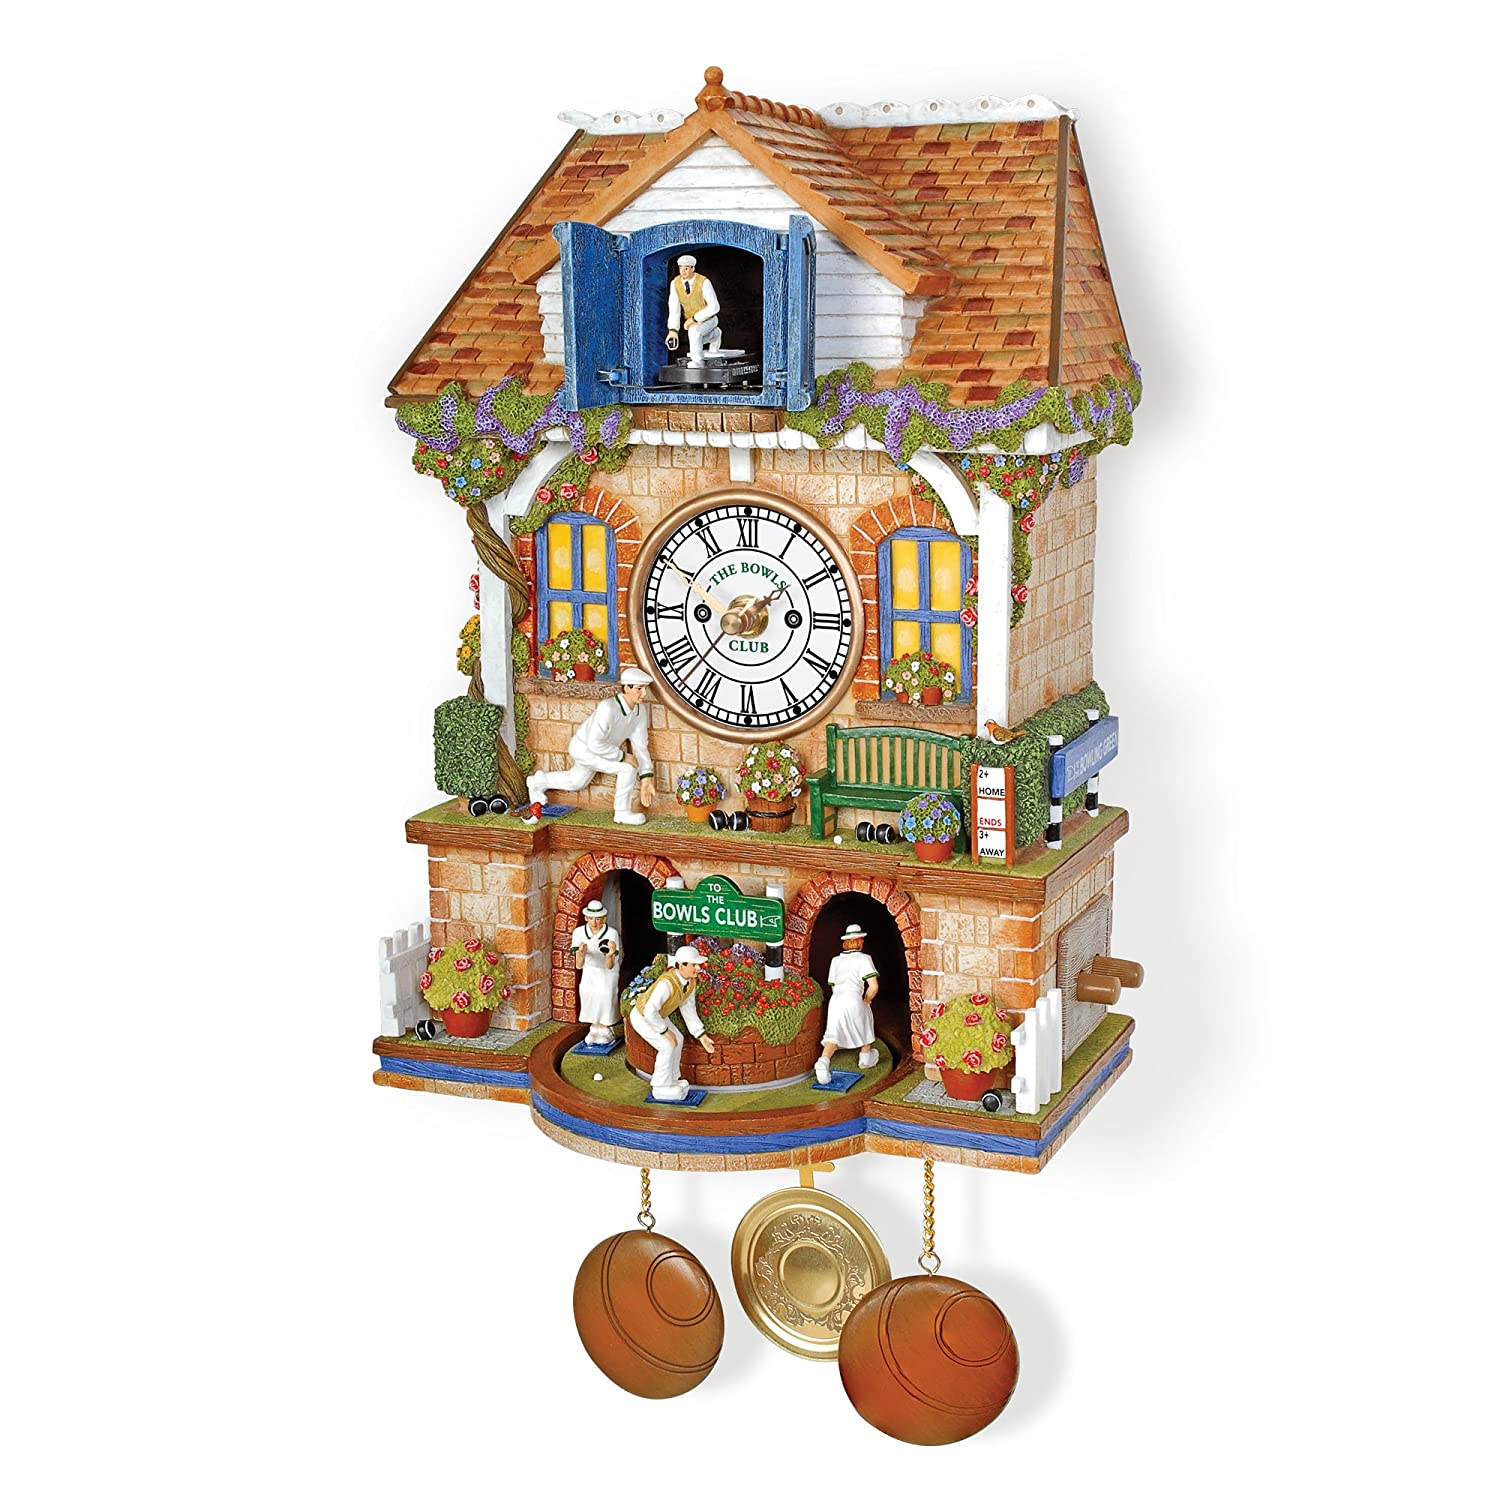 'Spirit Of Bowls' Cuckoo Clock by The Bradford Exchange